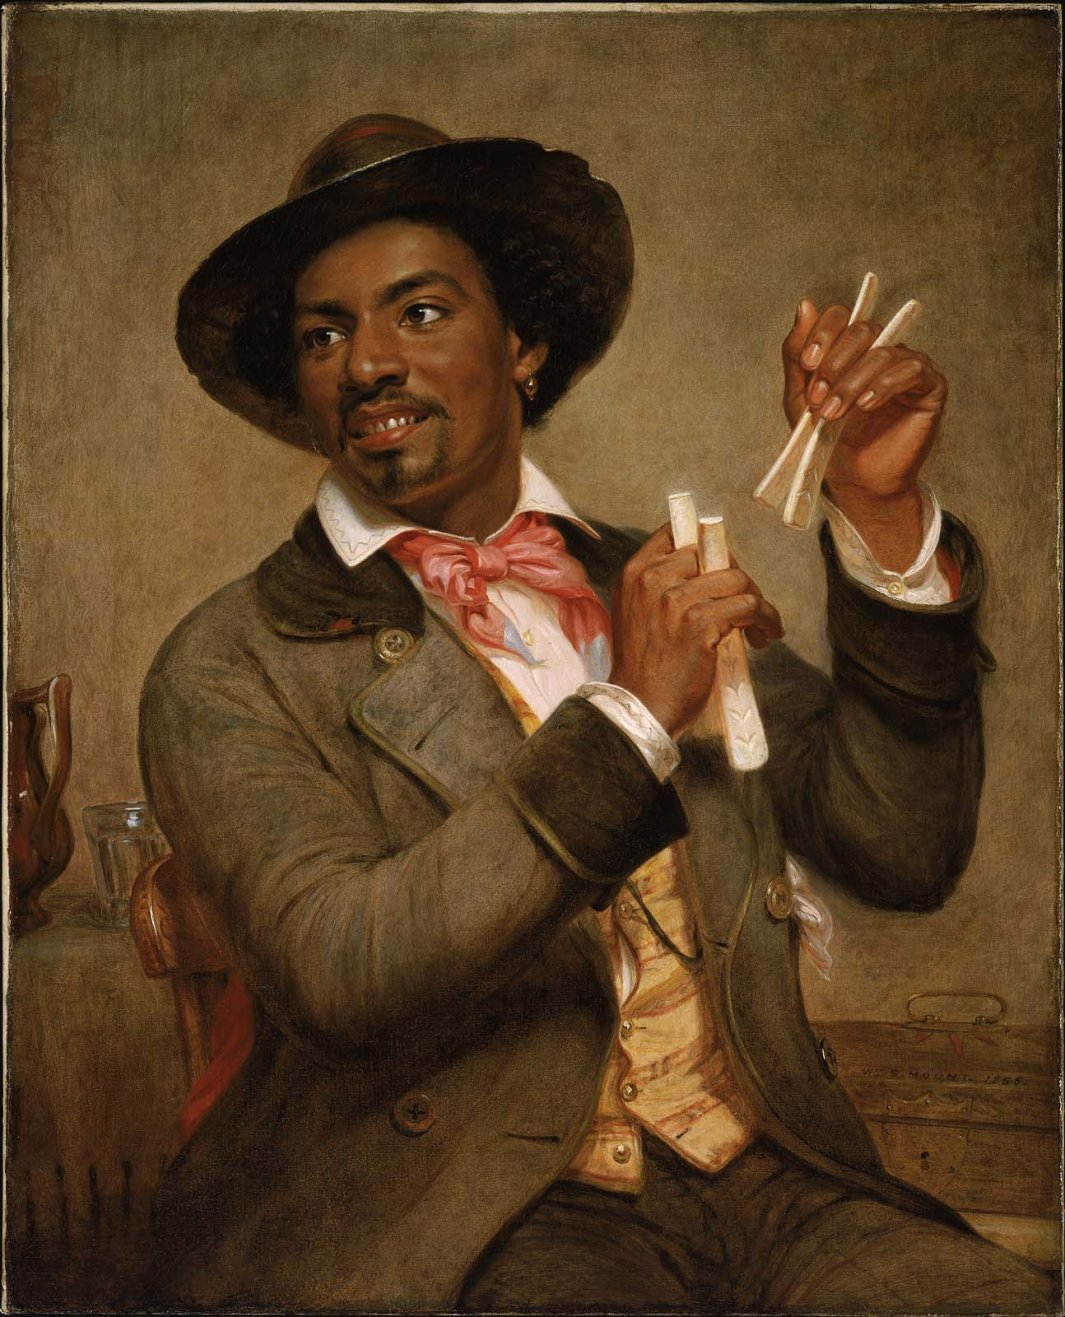 The Bone Player by William Mount (1856)